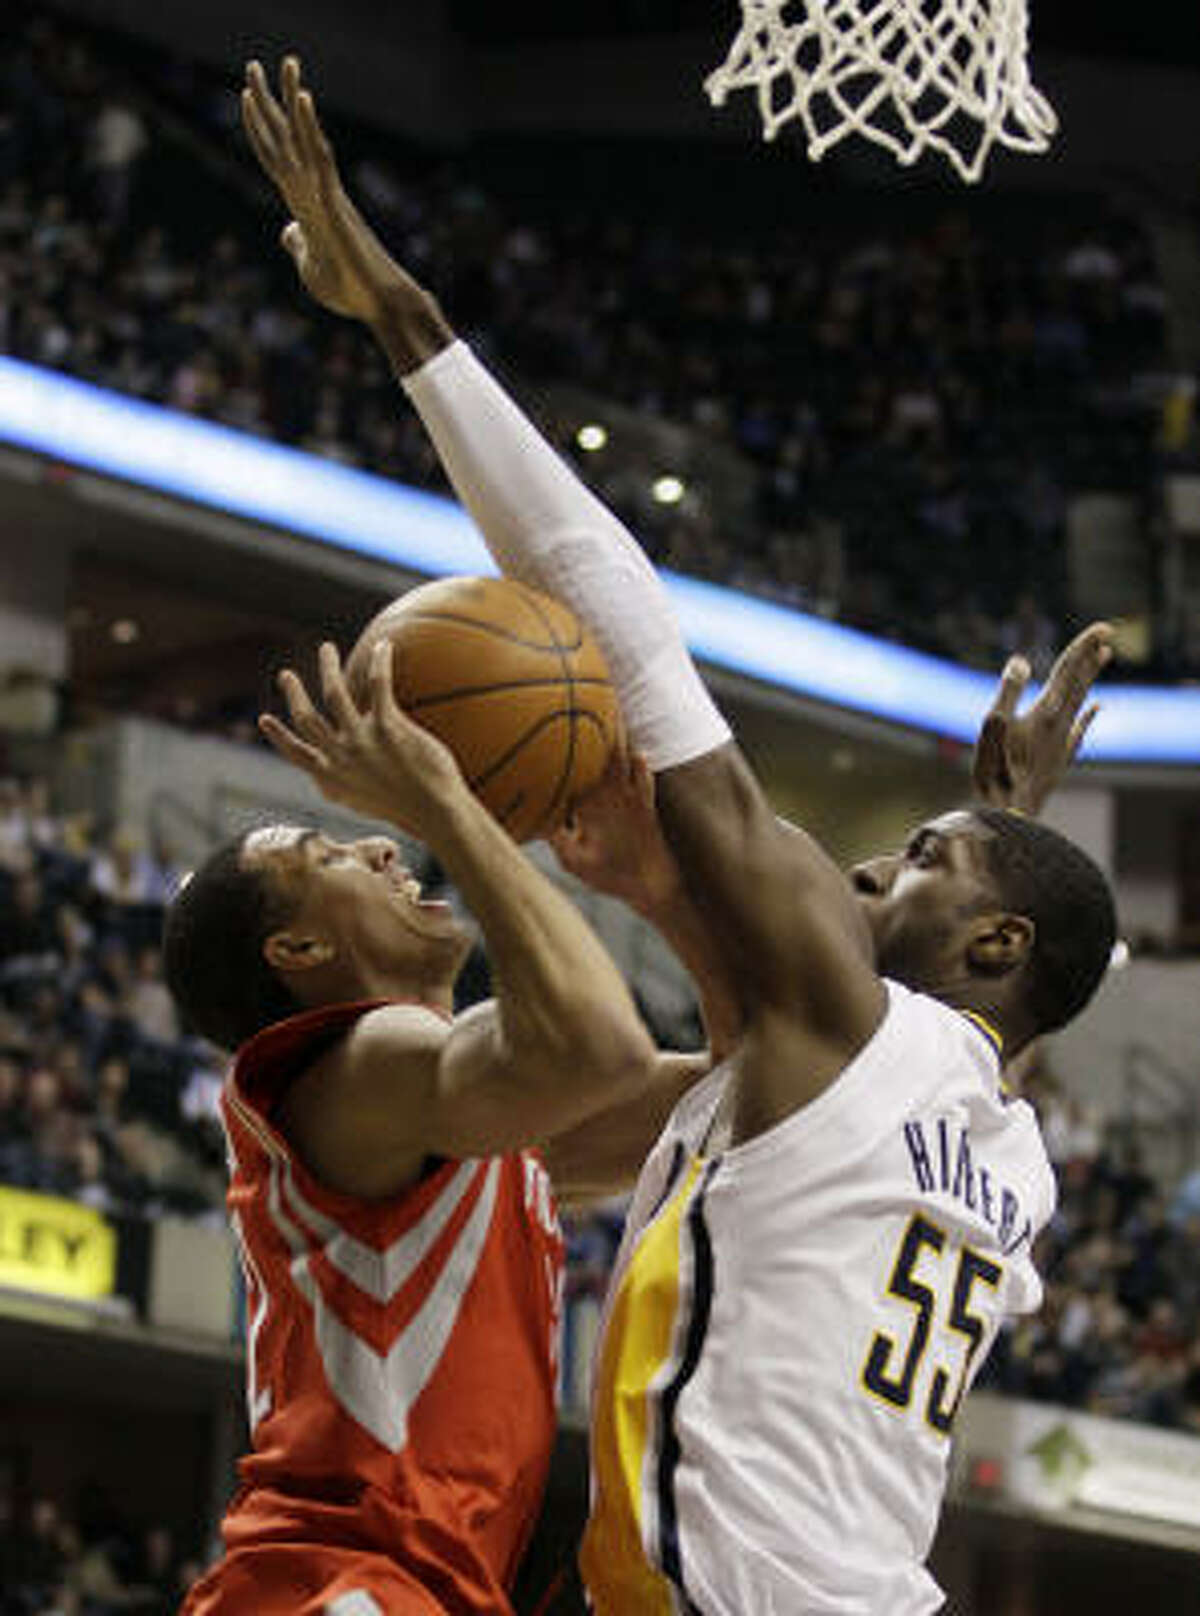 Rockets guard Kevin Martin, left, is fouled by Indiana Pacers center Roy Hibbert (55) as he goes up for a shot.